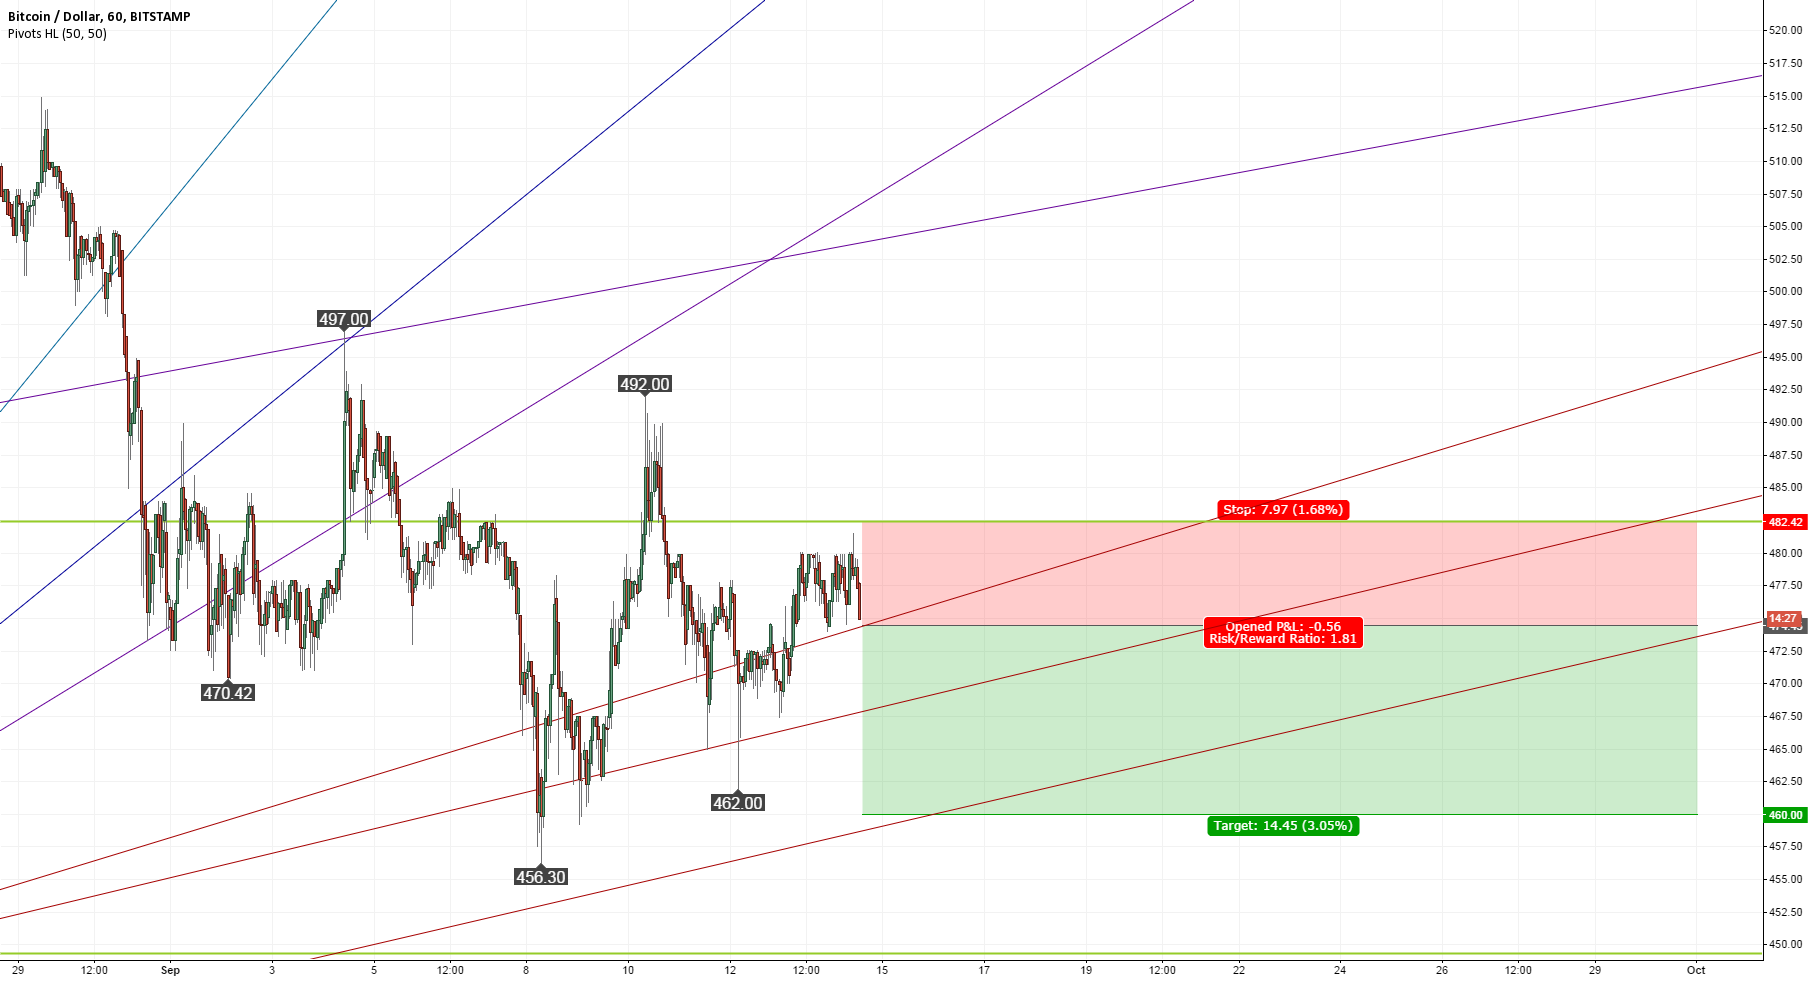 Short-term selling opportunity below 483 US Dollar